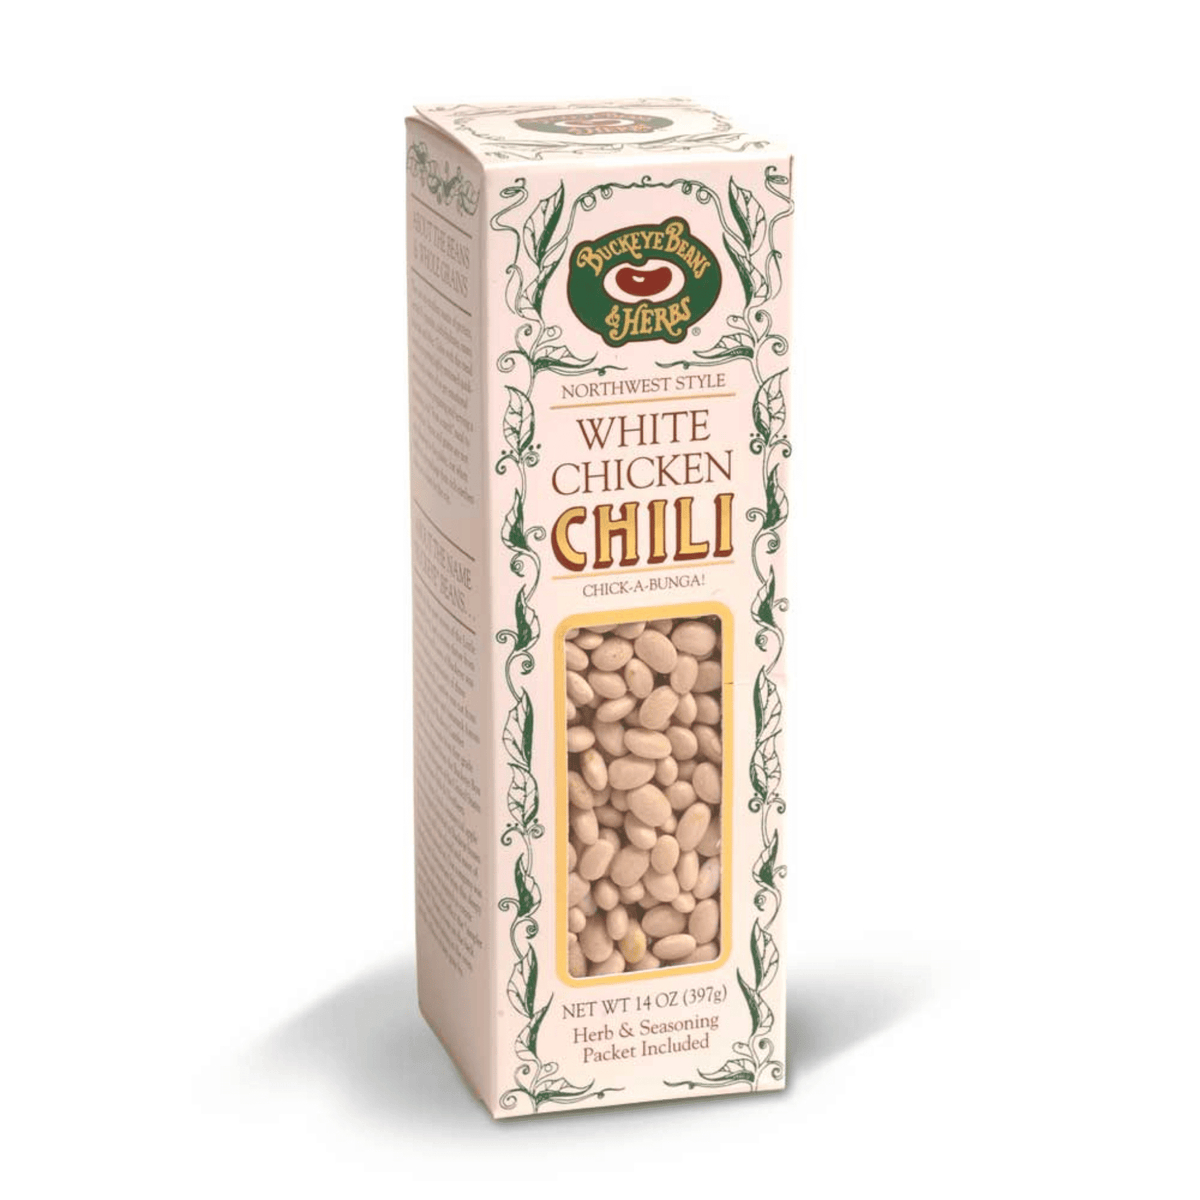 Buckeye Beans and Herbs Northwest Style White Chicken Chili 14-Ounce Box with Herb & Seasoning Packet Included